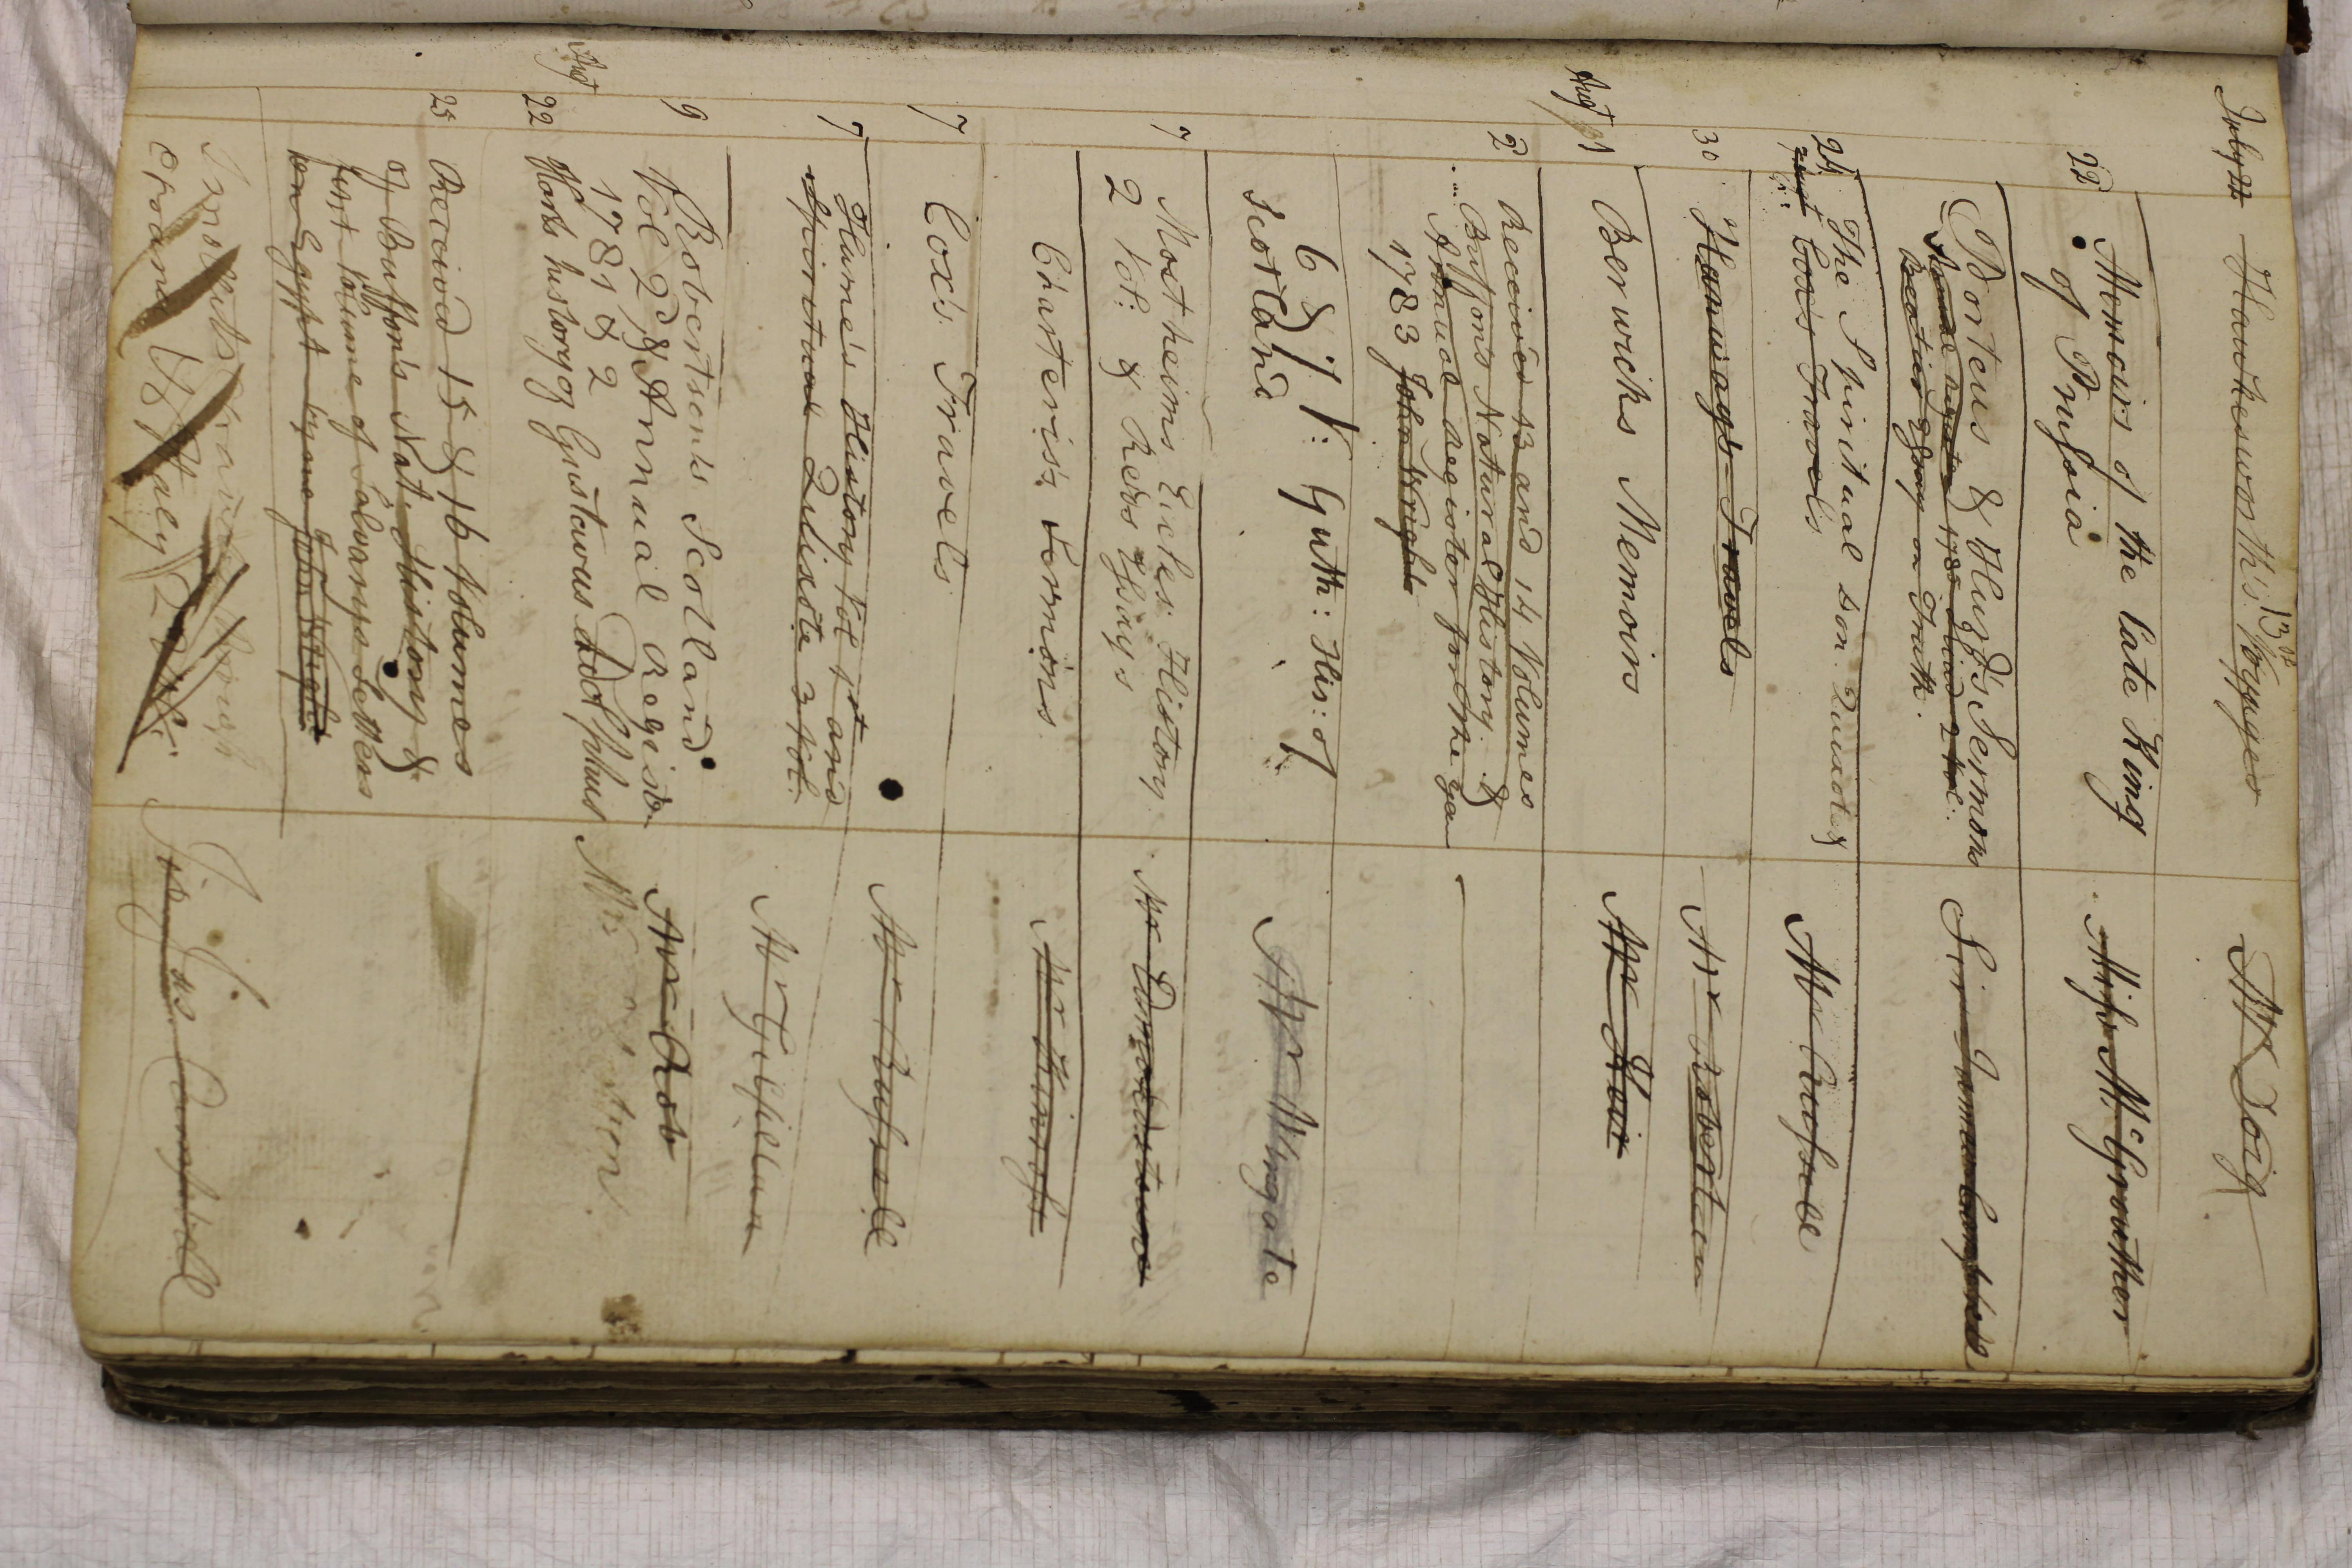 A page from the Leighton Library Borrowing Registers.